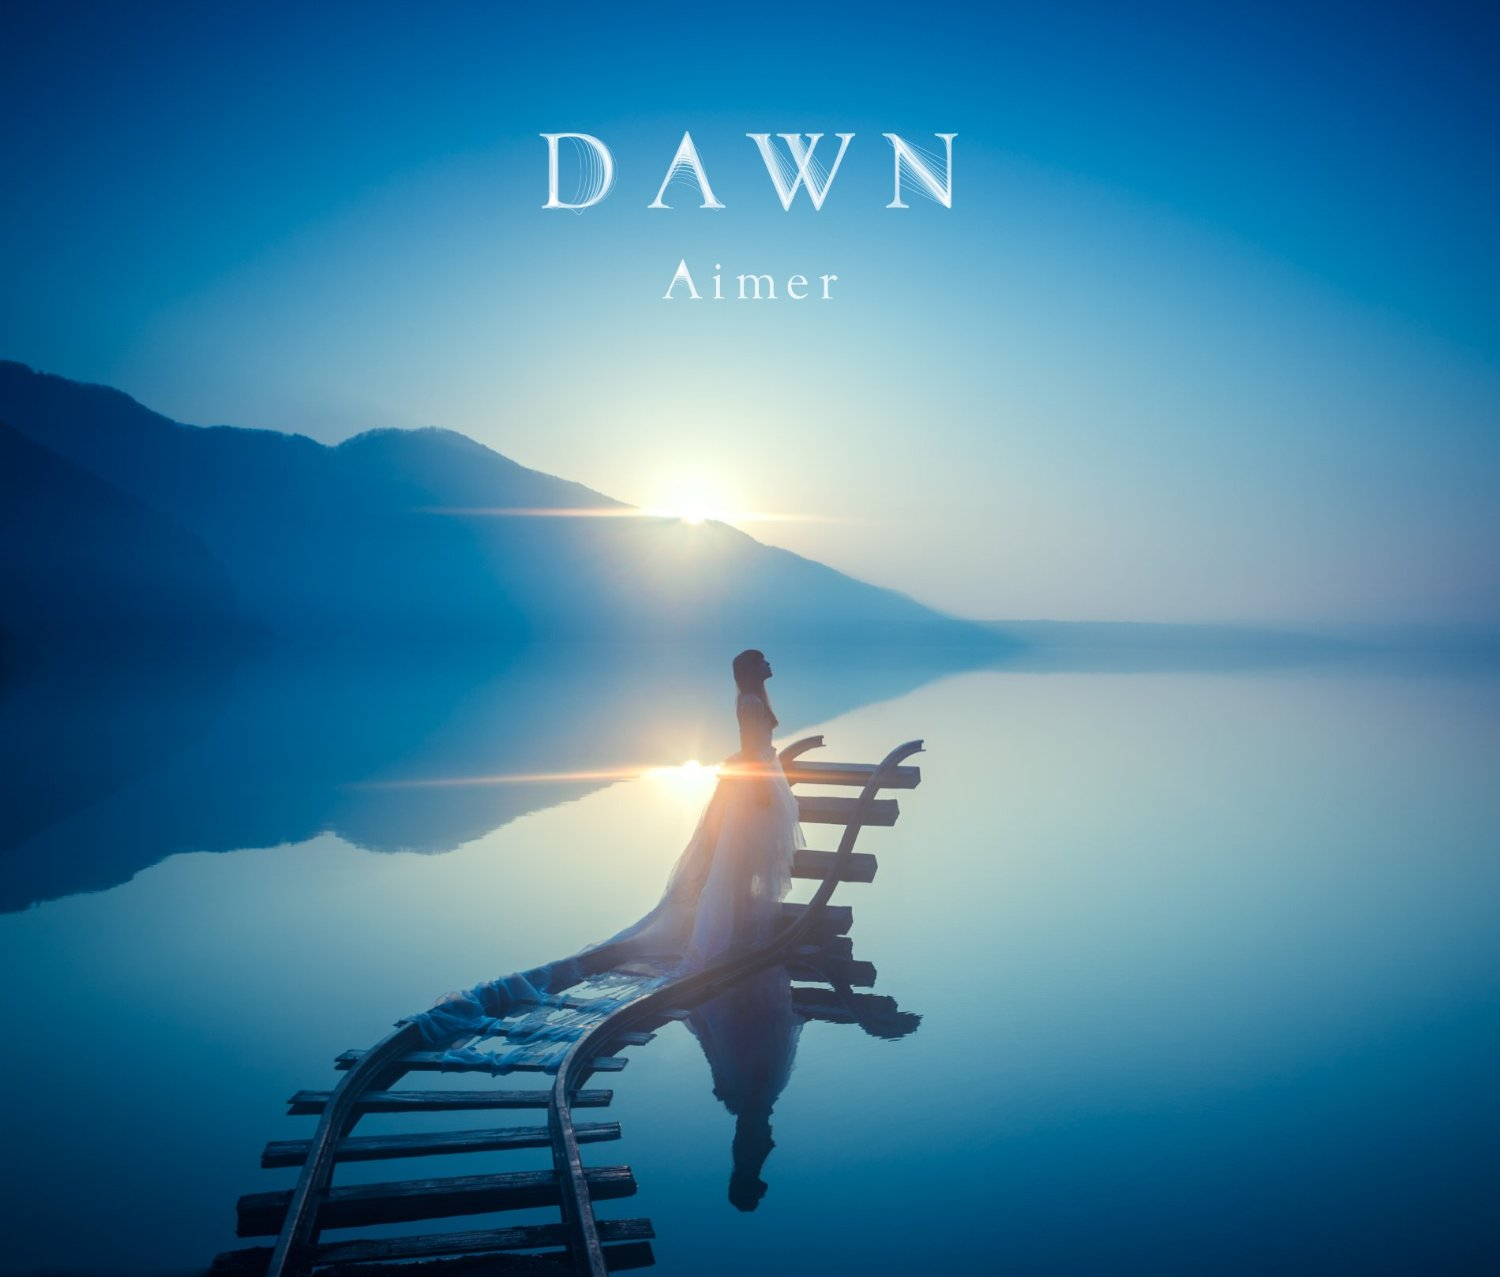 20161117.03.43 Aimer - Dawn cover.jpg